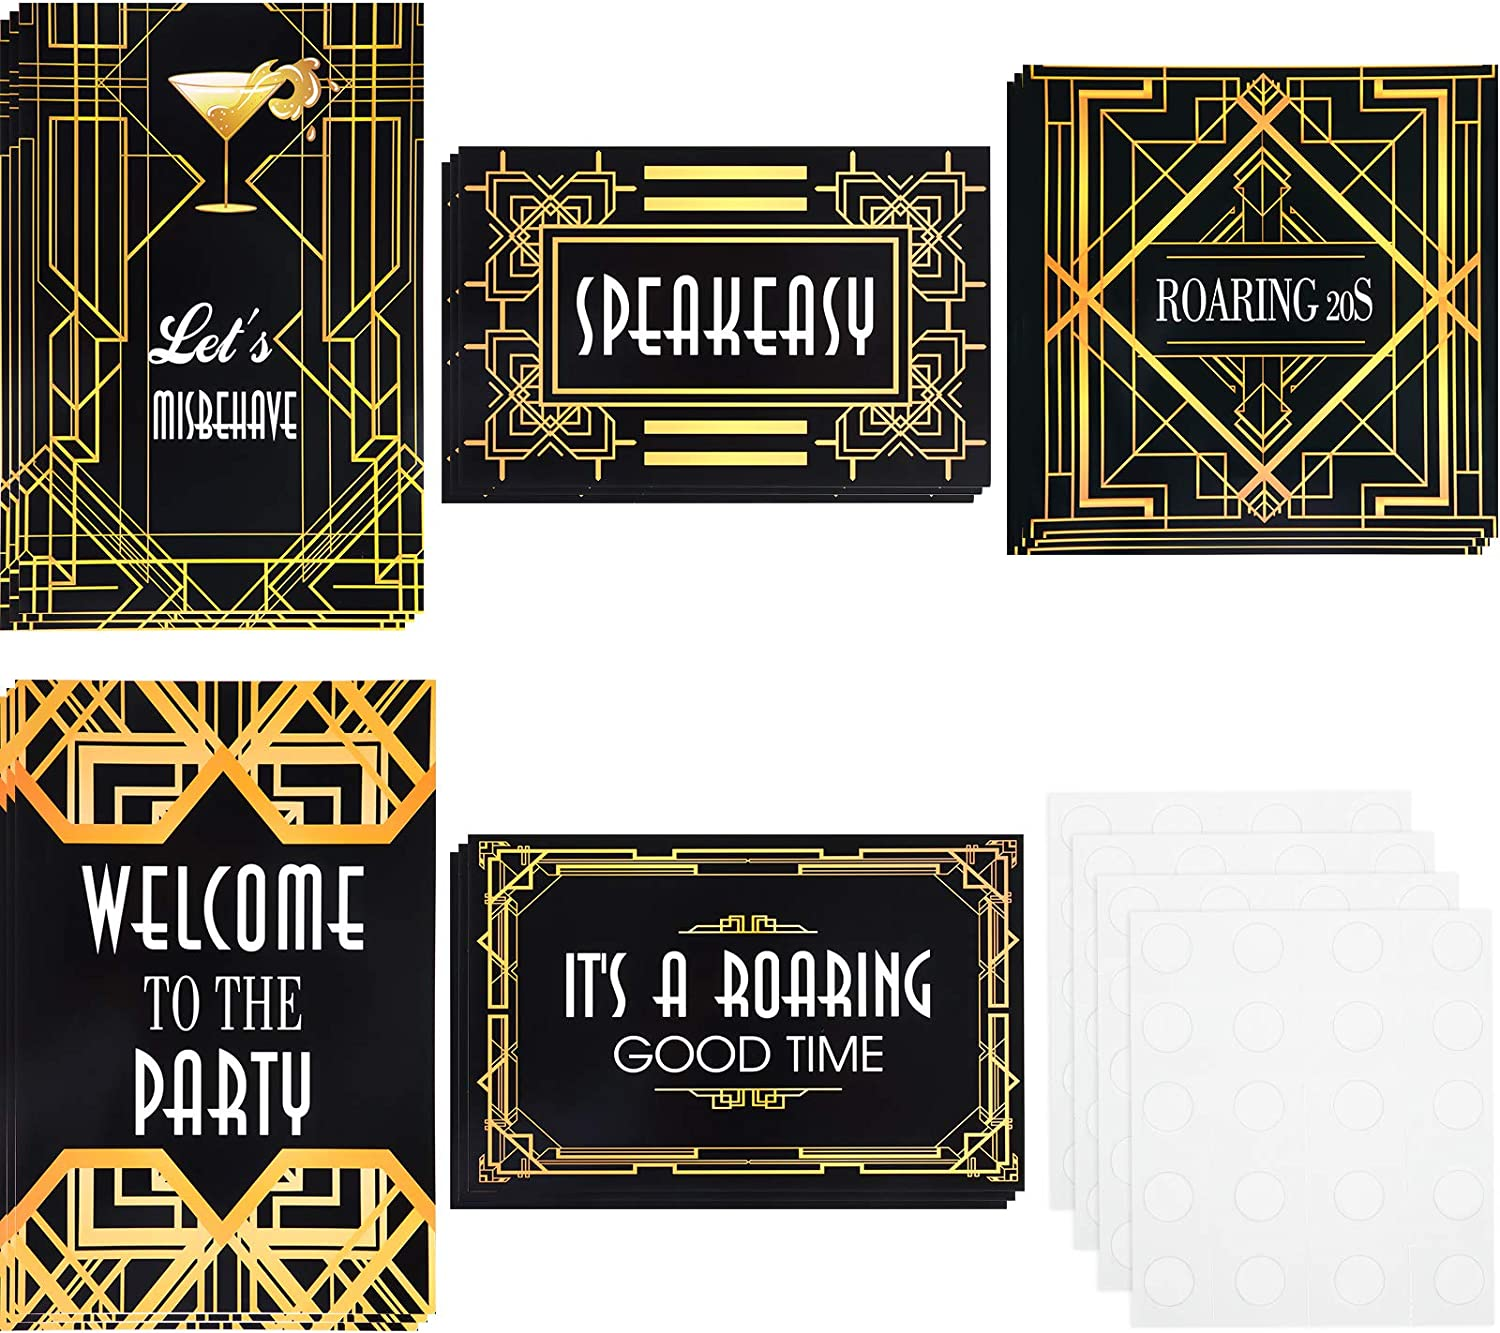 15 Pieces Roaring 20s Wall Signs Roaring 20s Party Retro Jazz Party Roaring Twenties Decorations Kit 1920s Party Supplies